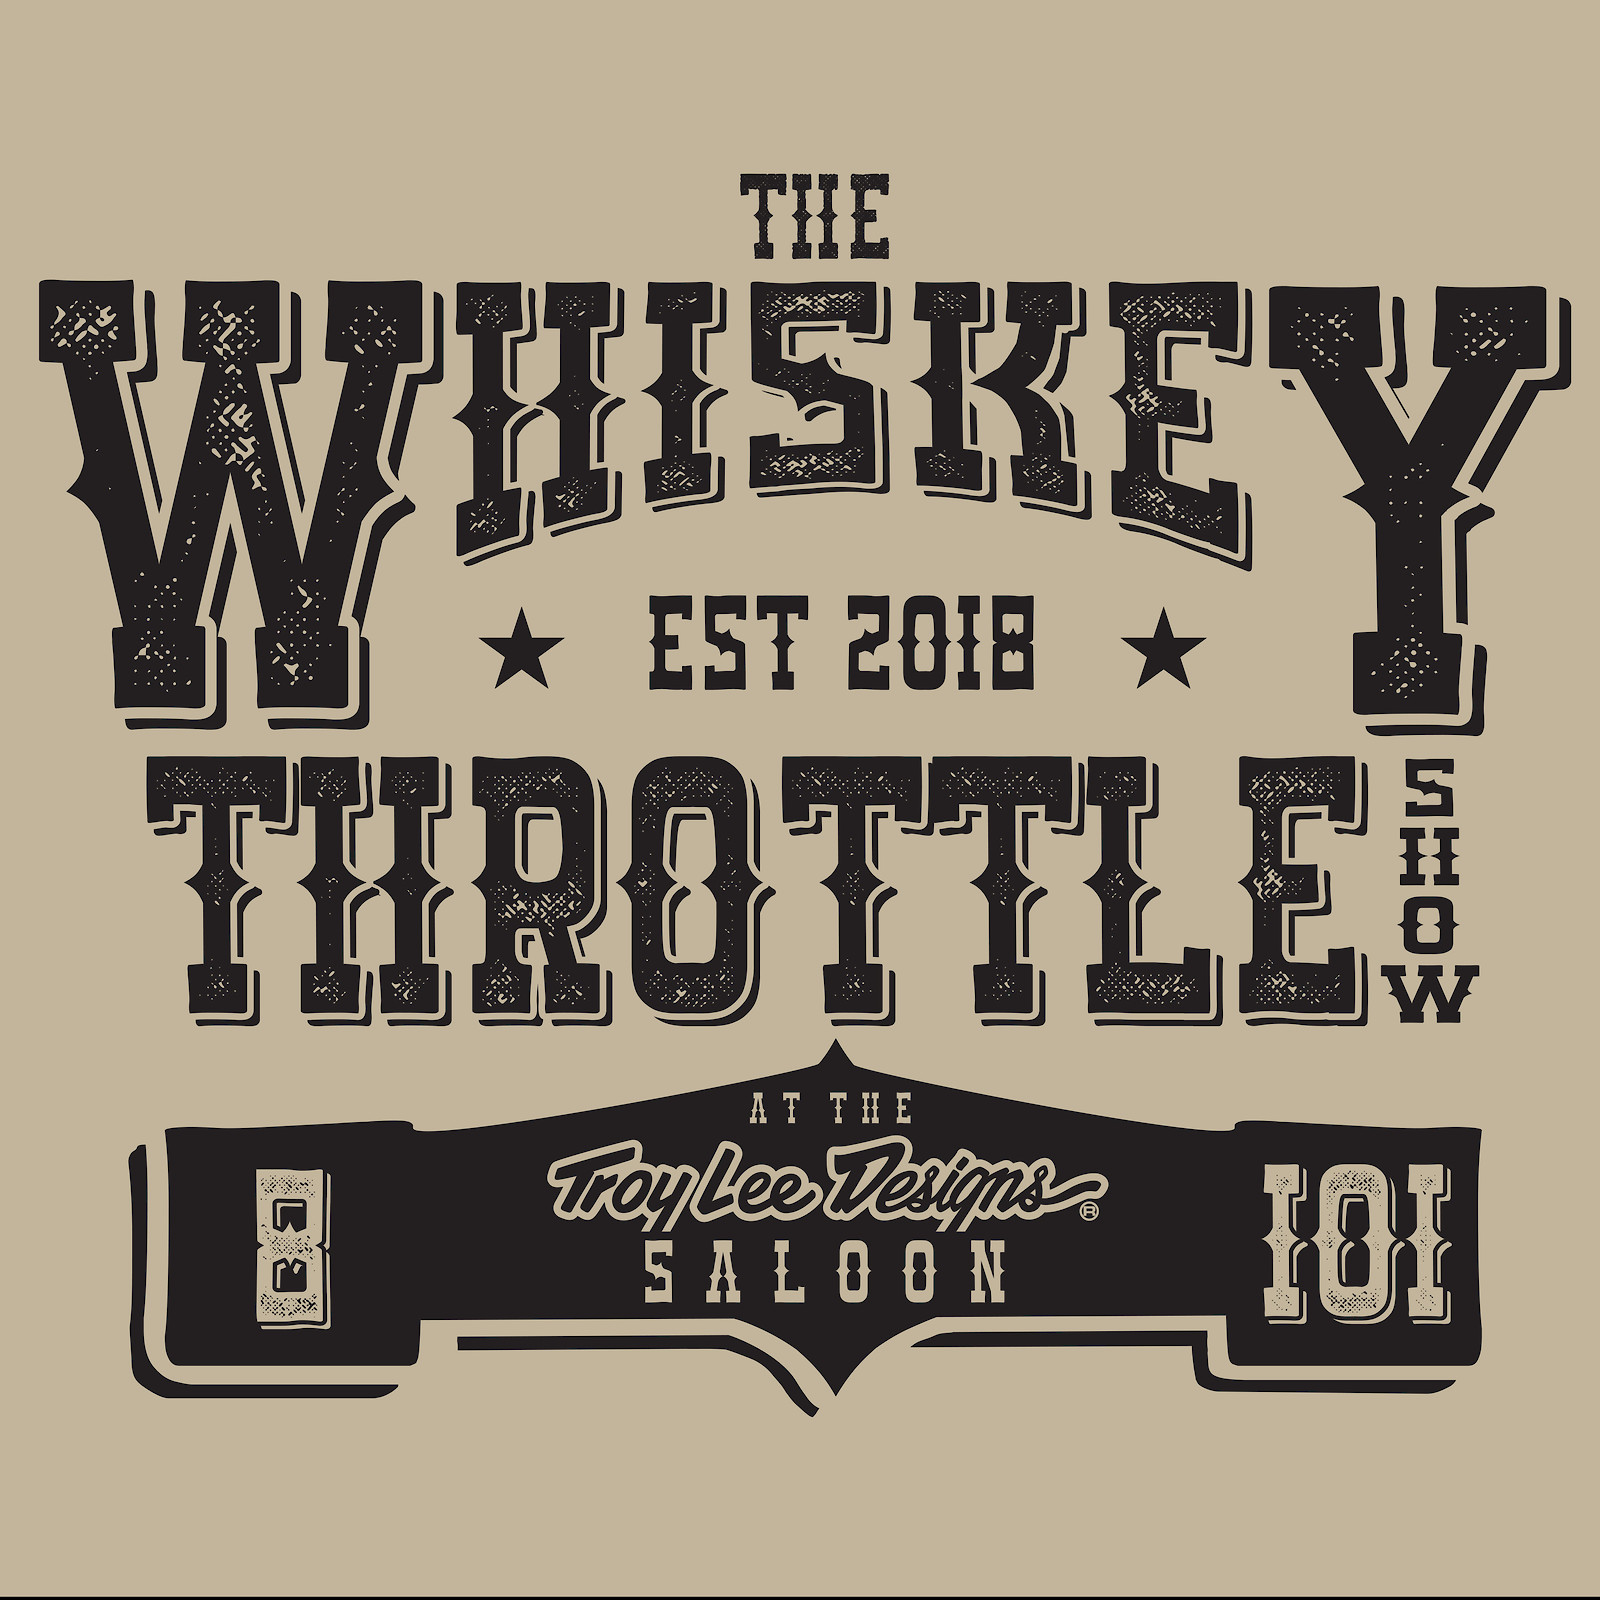 s1600-WHISKEY-THROTTLE-LOGO-BLK-on-TAN-3000x3000.jpg